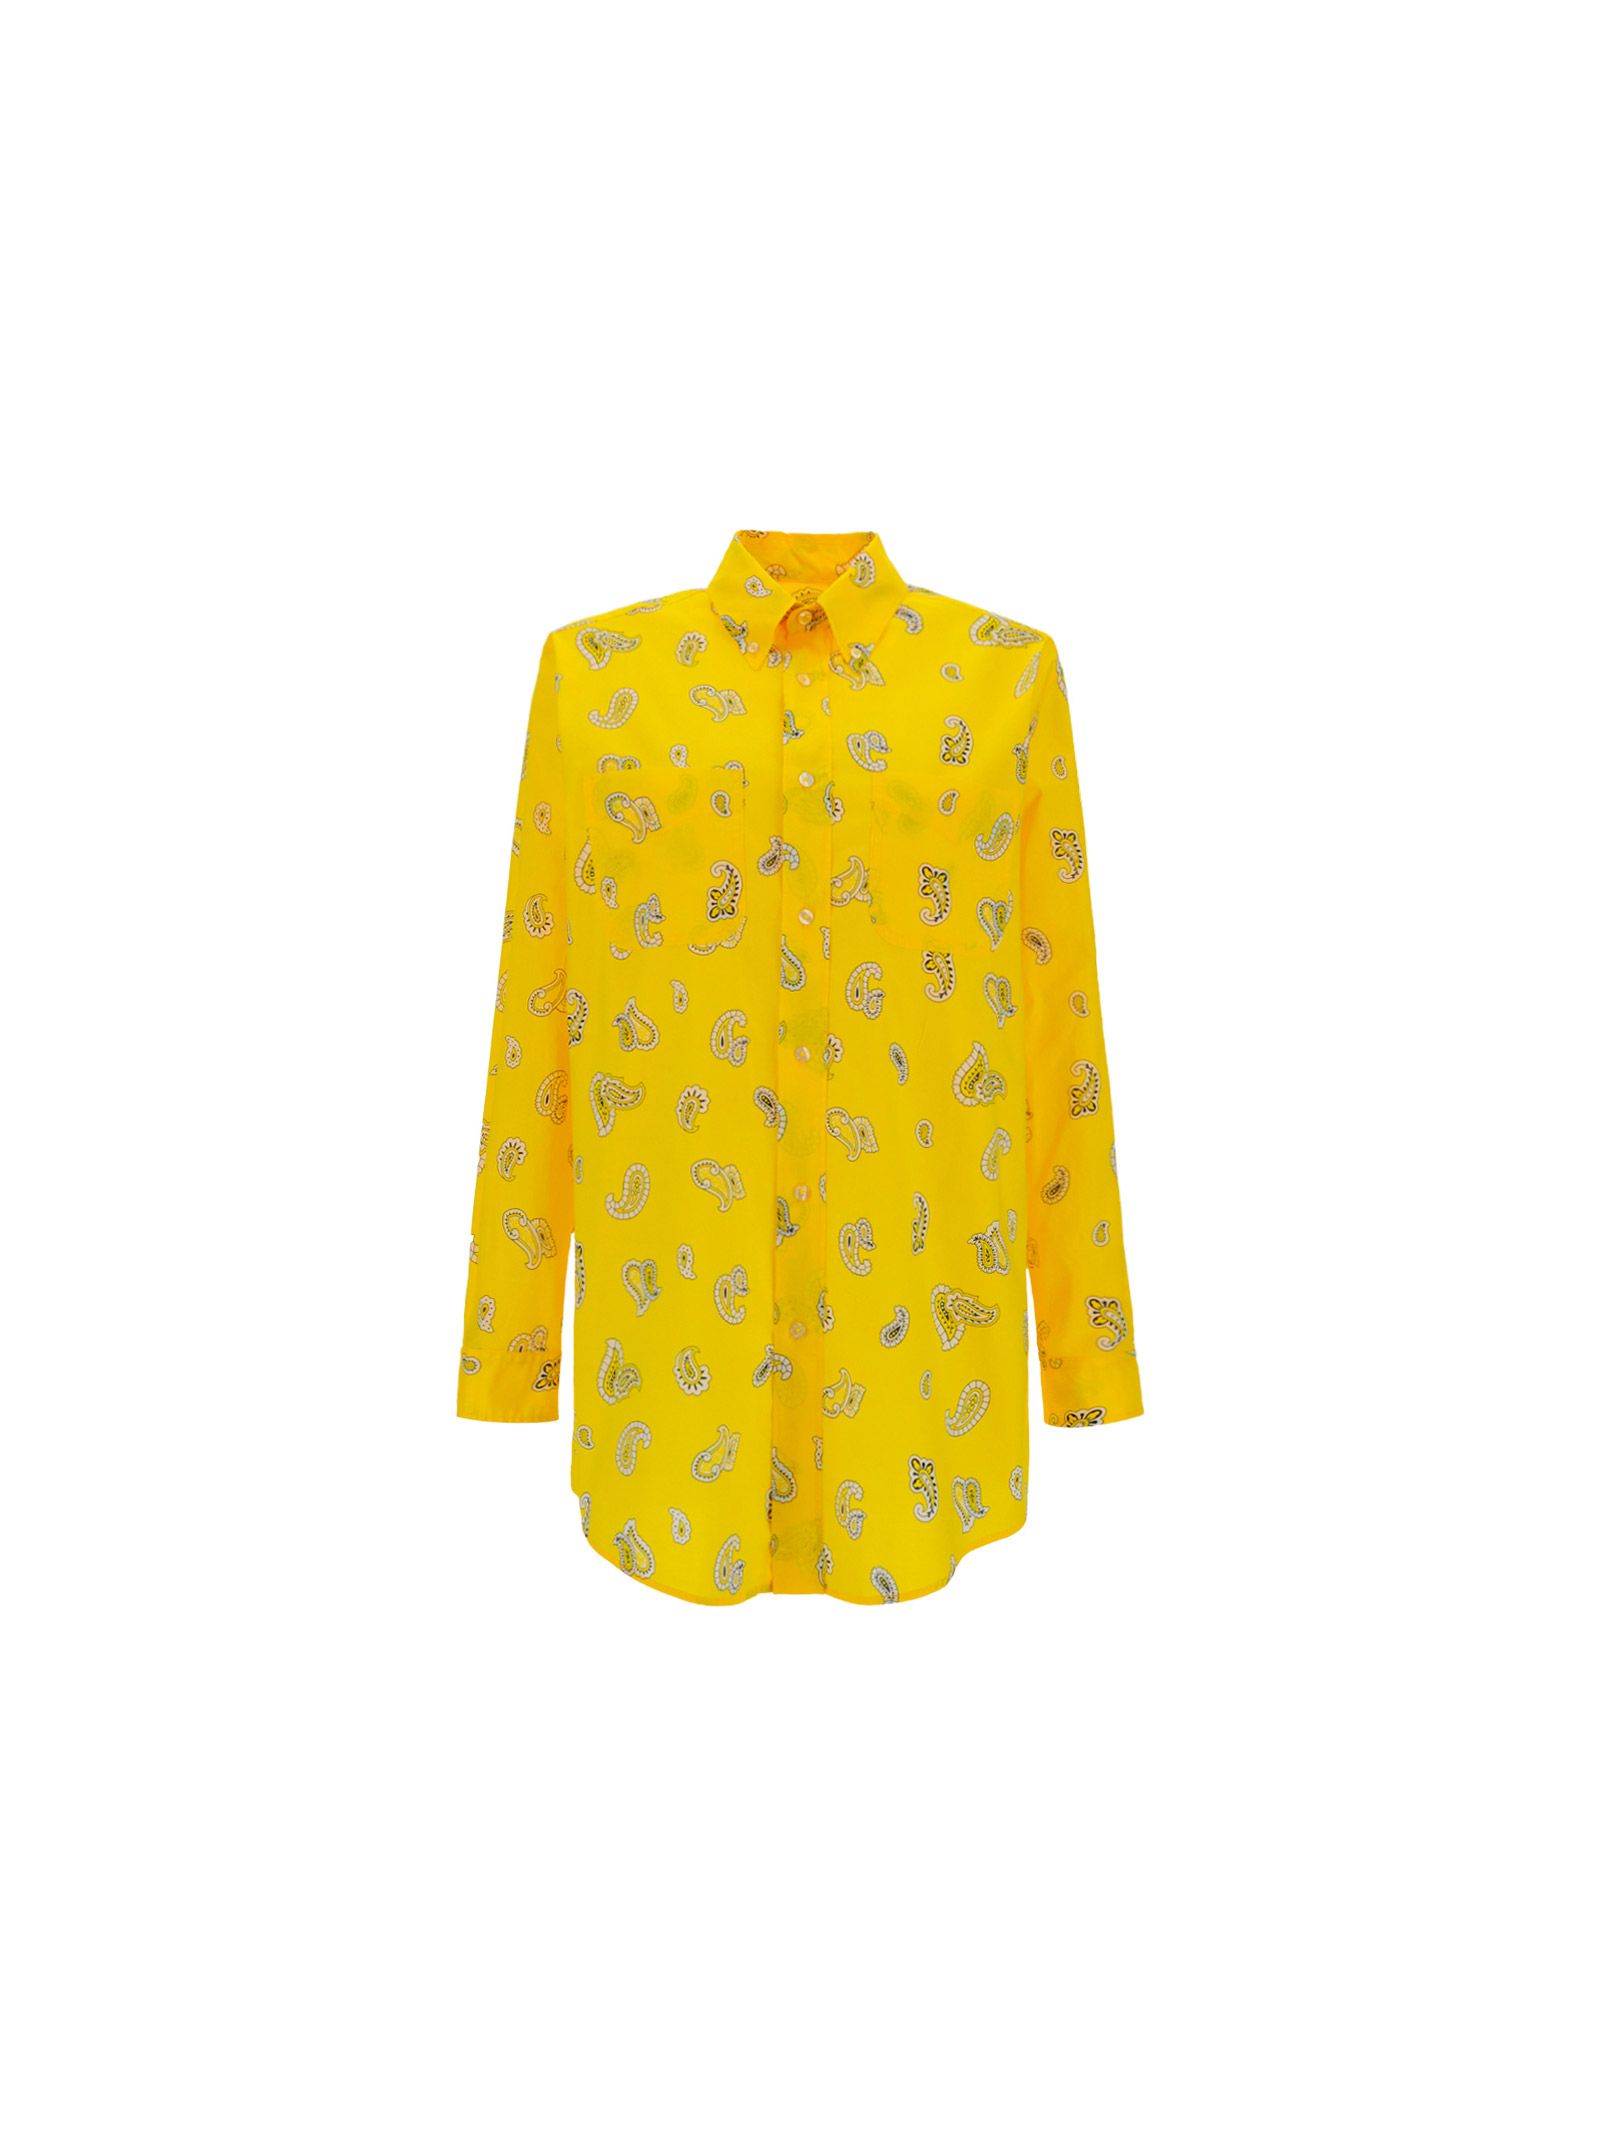 Etro Cottons ETRO WOMEN'S 143069508700 YELLOW OTHER MATERIALS SHIRT